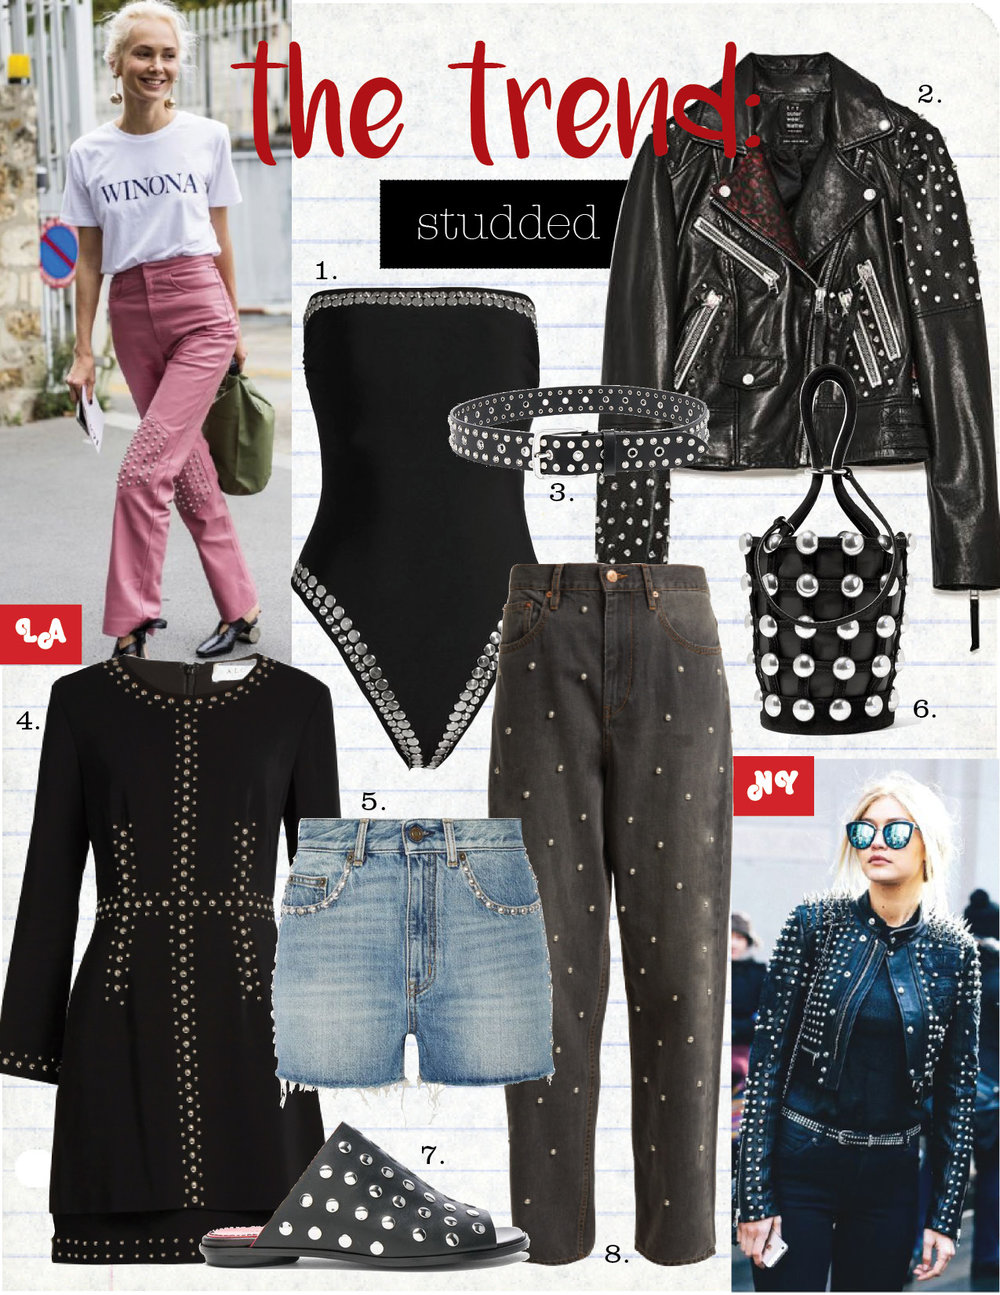 1. norma kamali bishop studded swimsuit, $525,  matchesfashion.com  2. zara studded biker jacket, $99,  zara.com  3. isabel marant rica studded belt, $295,  isabelmarant.com  4. a.l.c madison stud-embellished cady dress, $486,  matchesfashion.com  5. saint laurent studded high-rise denim shorts, $470,  net-a-porter.com  6. alexander wang roxy studded suede-trimmed leather bucket bag, $595,  net-a-porter.com  7. proenza schouler studded leather sandals, $720,  fwrd.com  8. isabel marant etoile curt studded oversize boyfriend fit jeans, $485,  isabelmarant.com